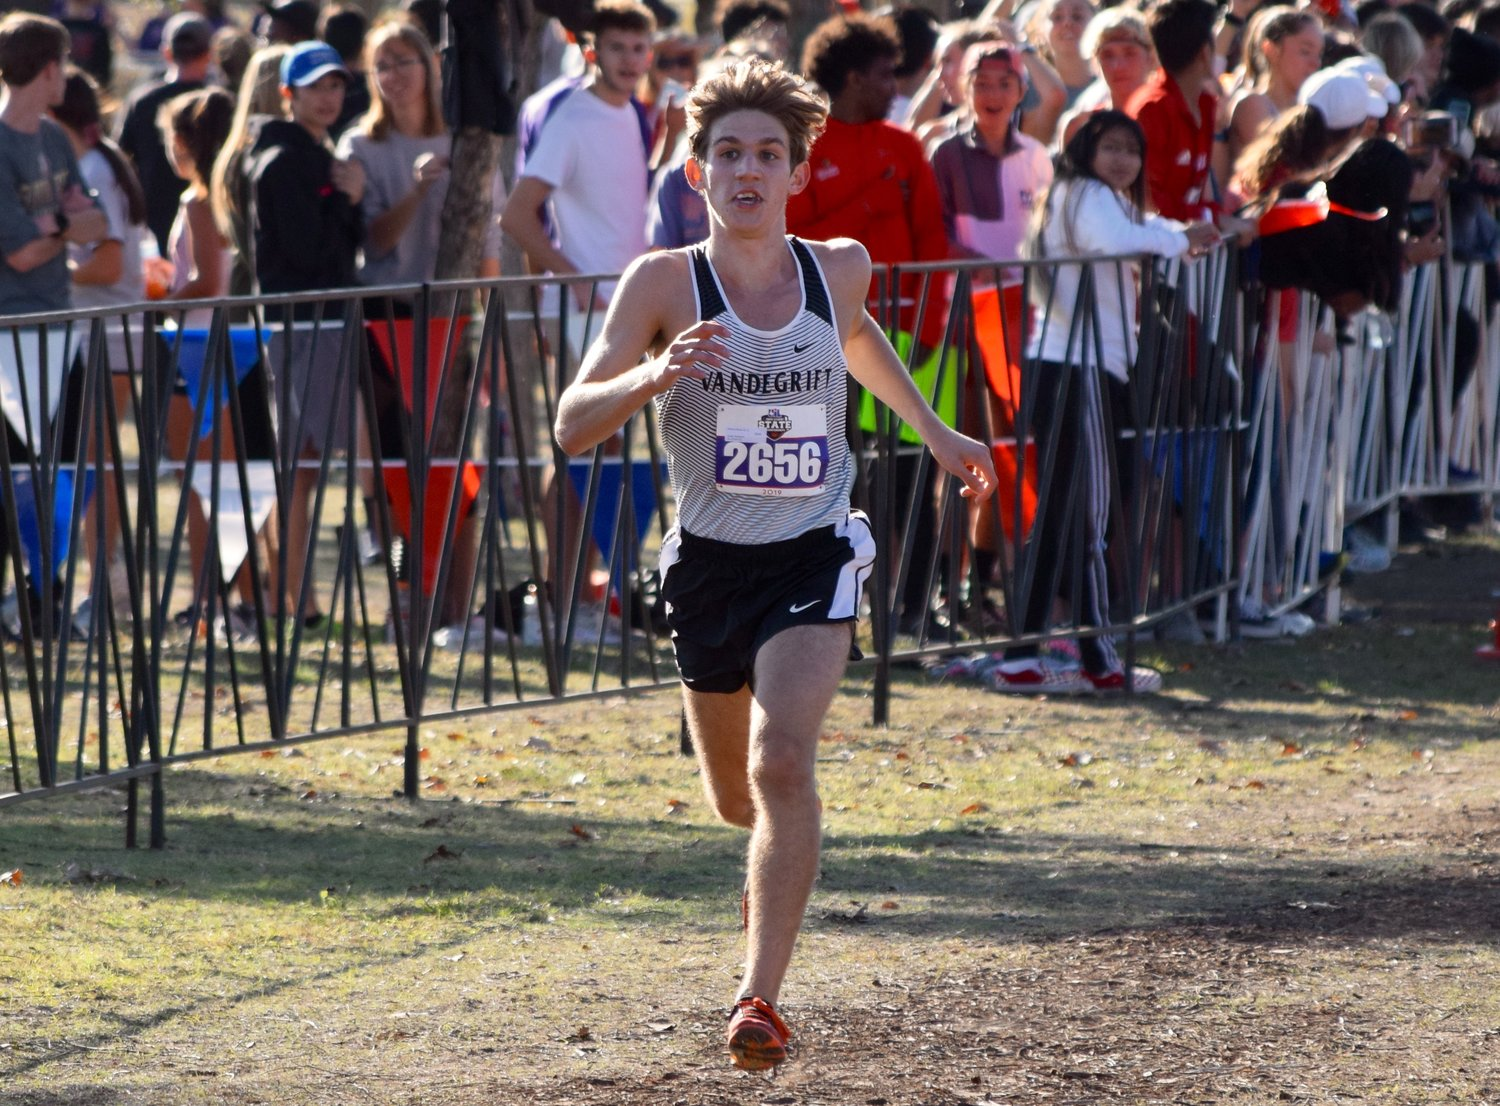 Vandegrift senior Anthony Monte set a new personal and school record at the state cross country meet Saturday in Round Rock and finished second overall in the 6A Boys race.